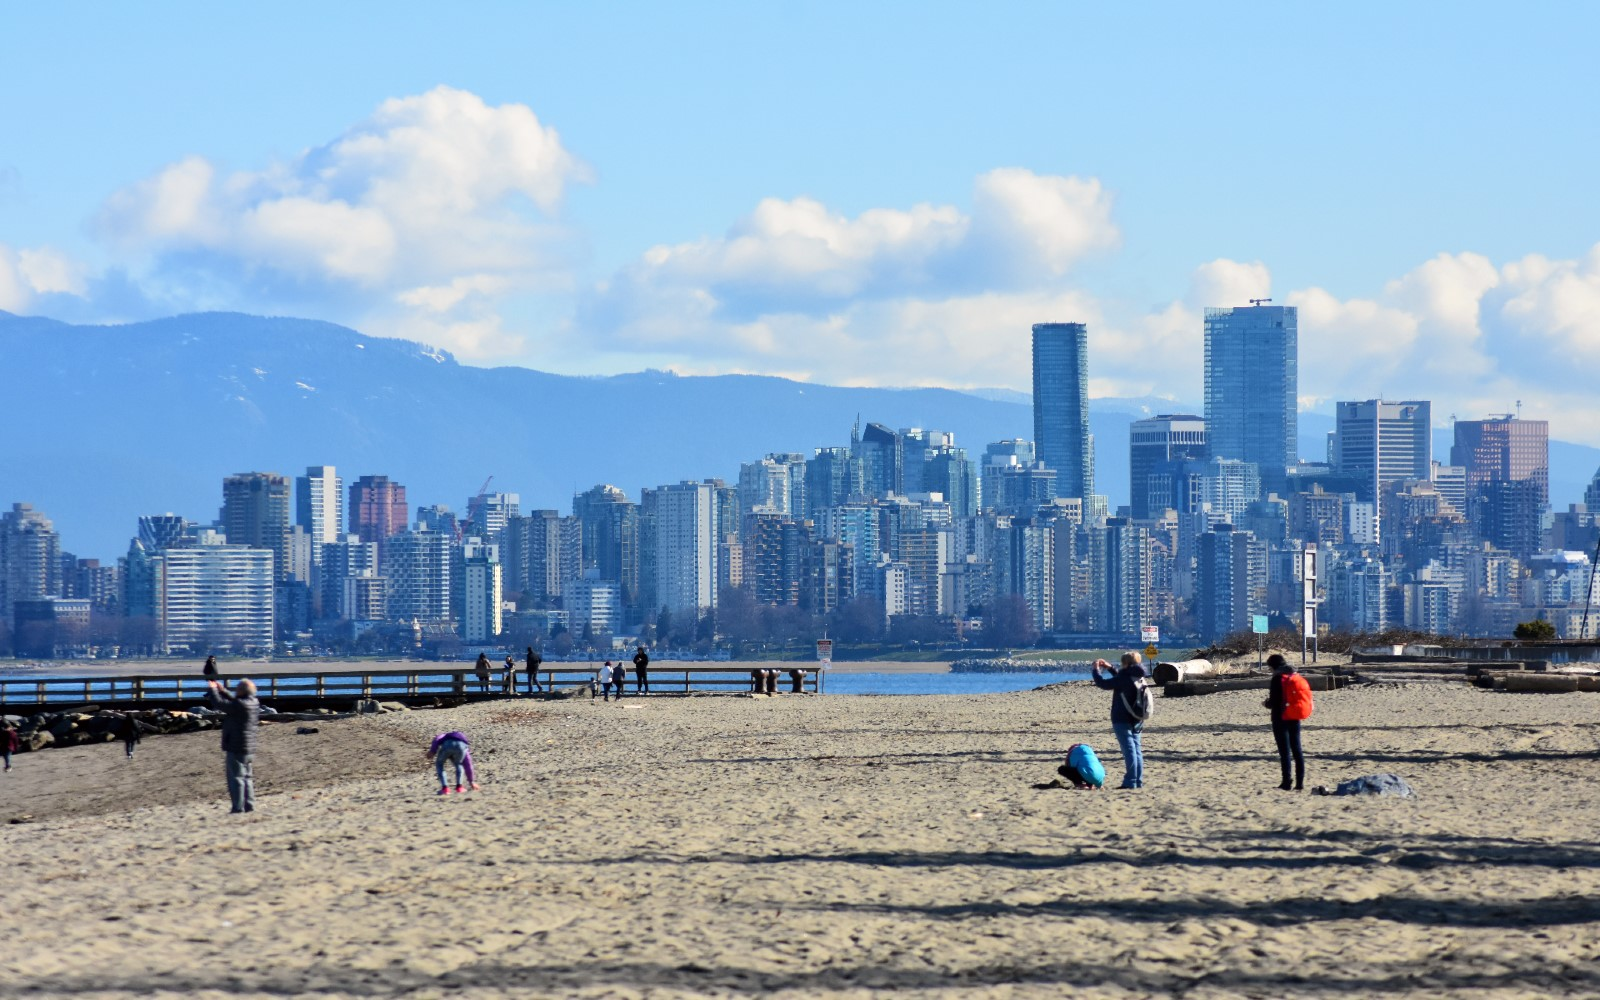 The view of Vancouver's skyline from Jericho Beach